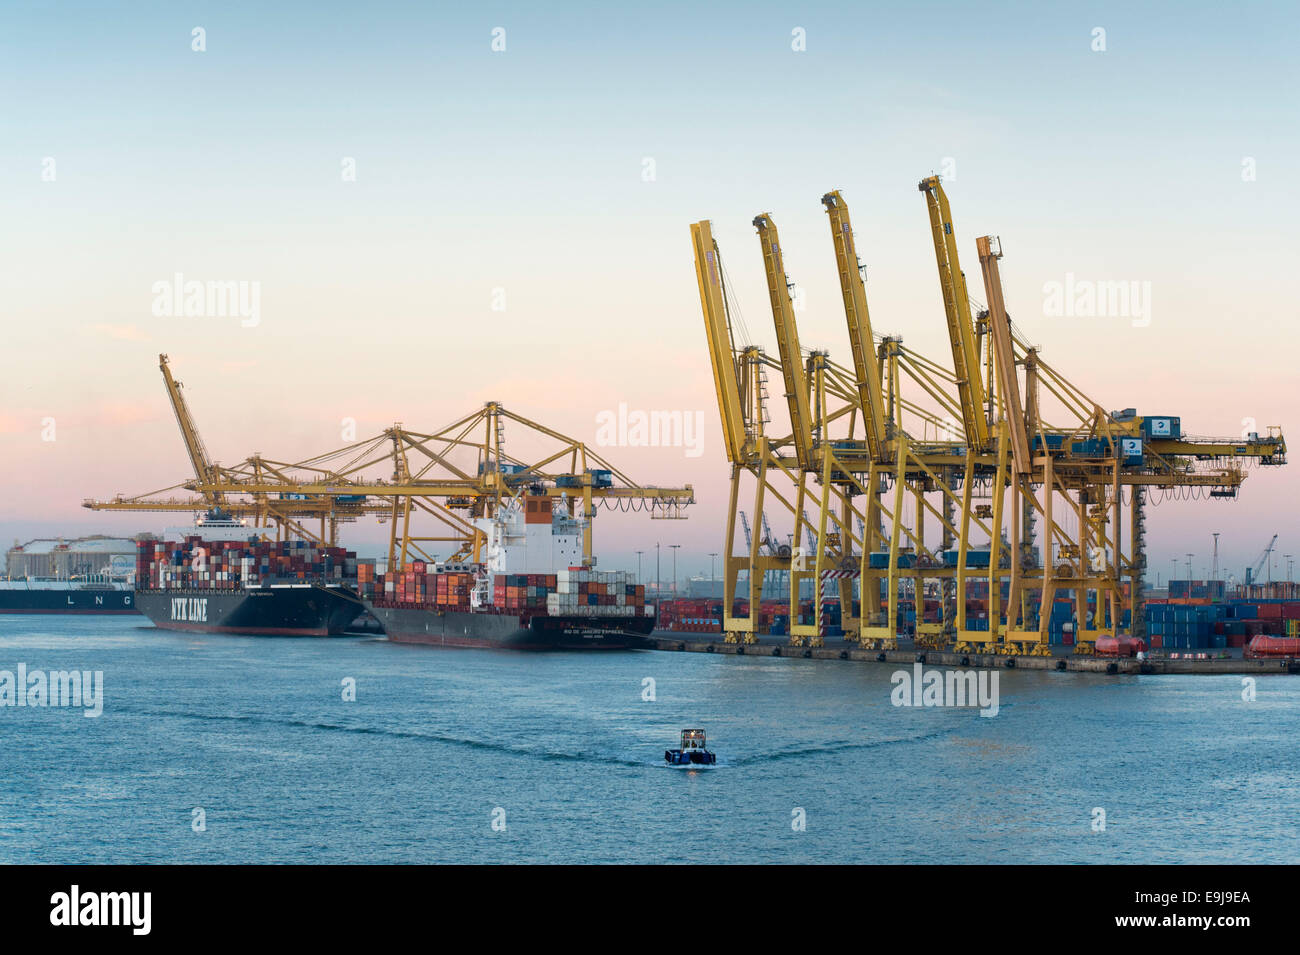 Cargo ships docked for import and export at Barcelona international shipping port in Barcelona, Spain. - Stock Image